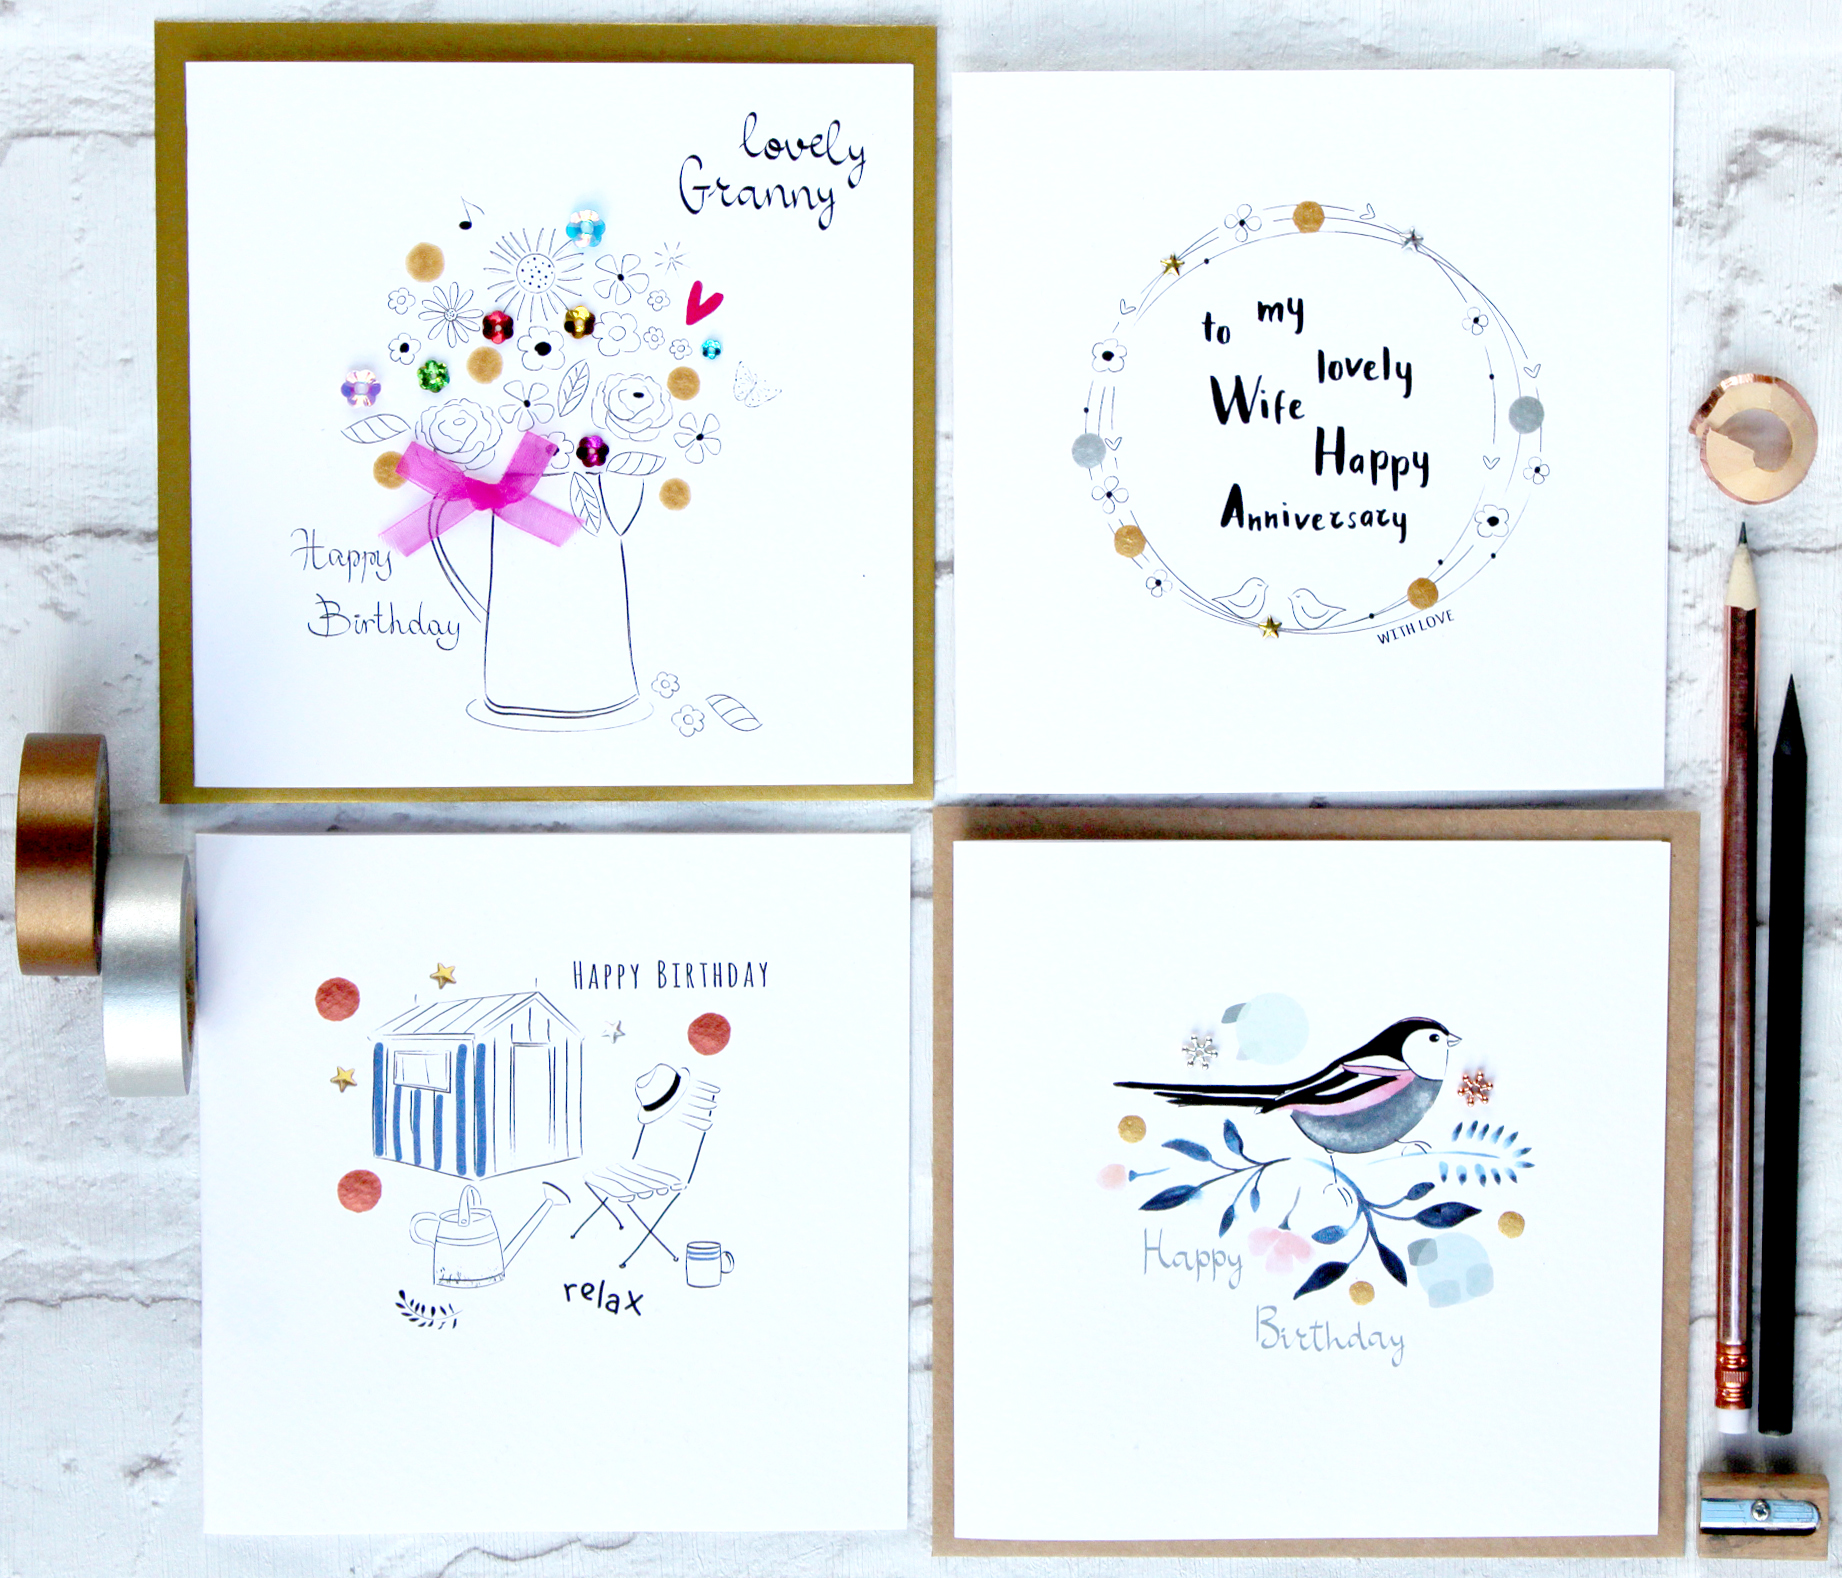 Handmade Greeting Cards Sabivo Designs Blog